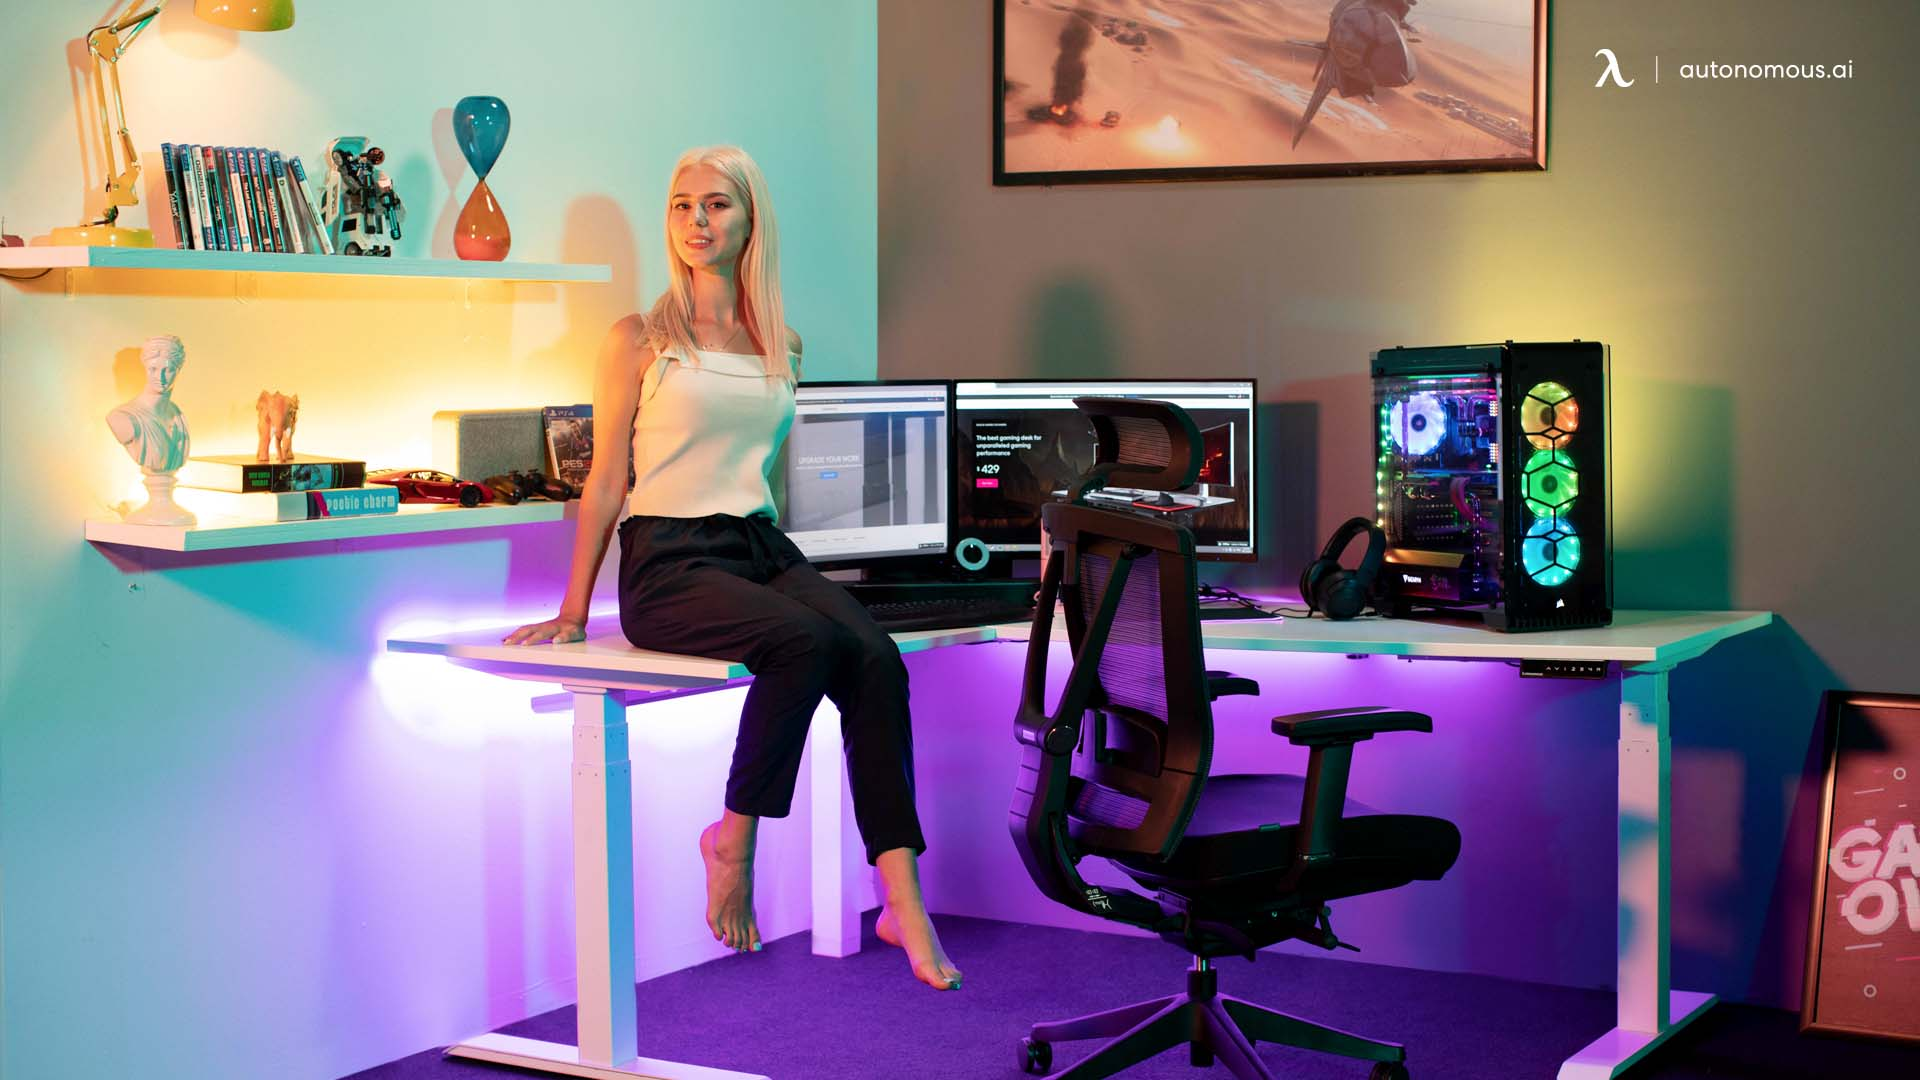 How Expensive are Standing Desks?